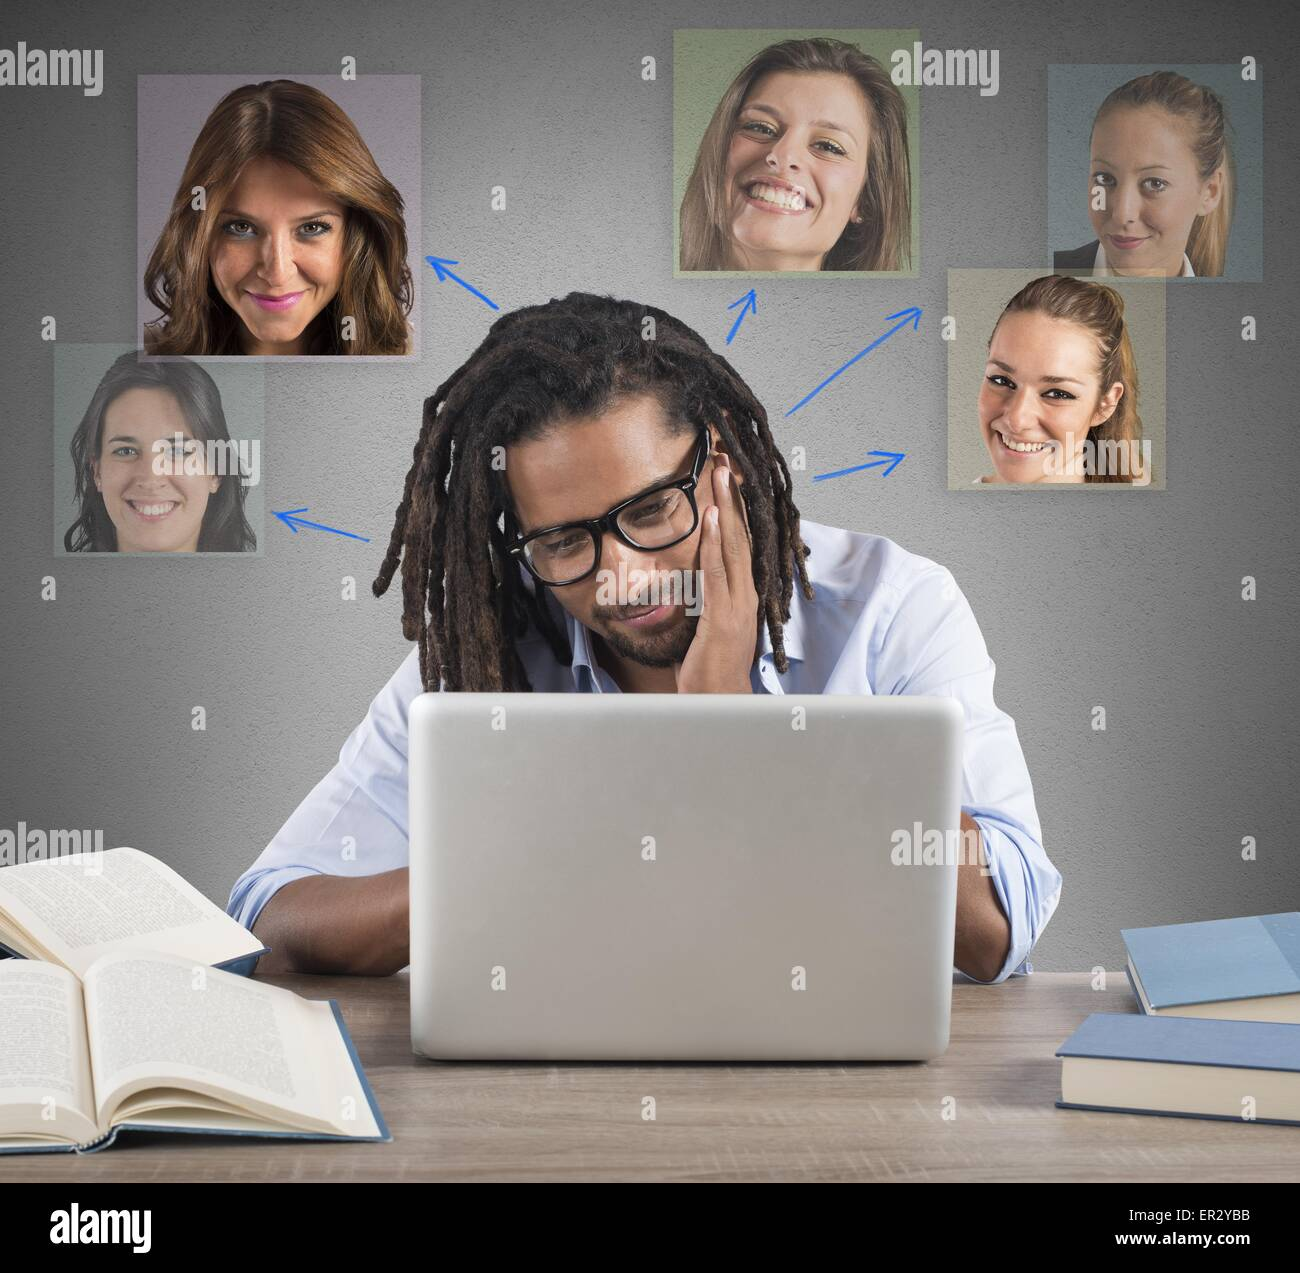 Man chat with girls - Stock Image